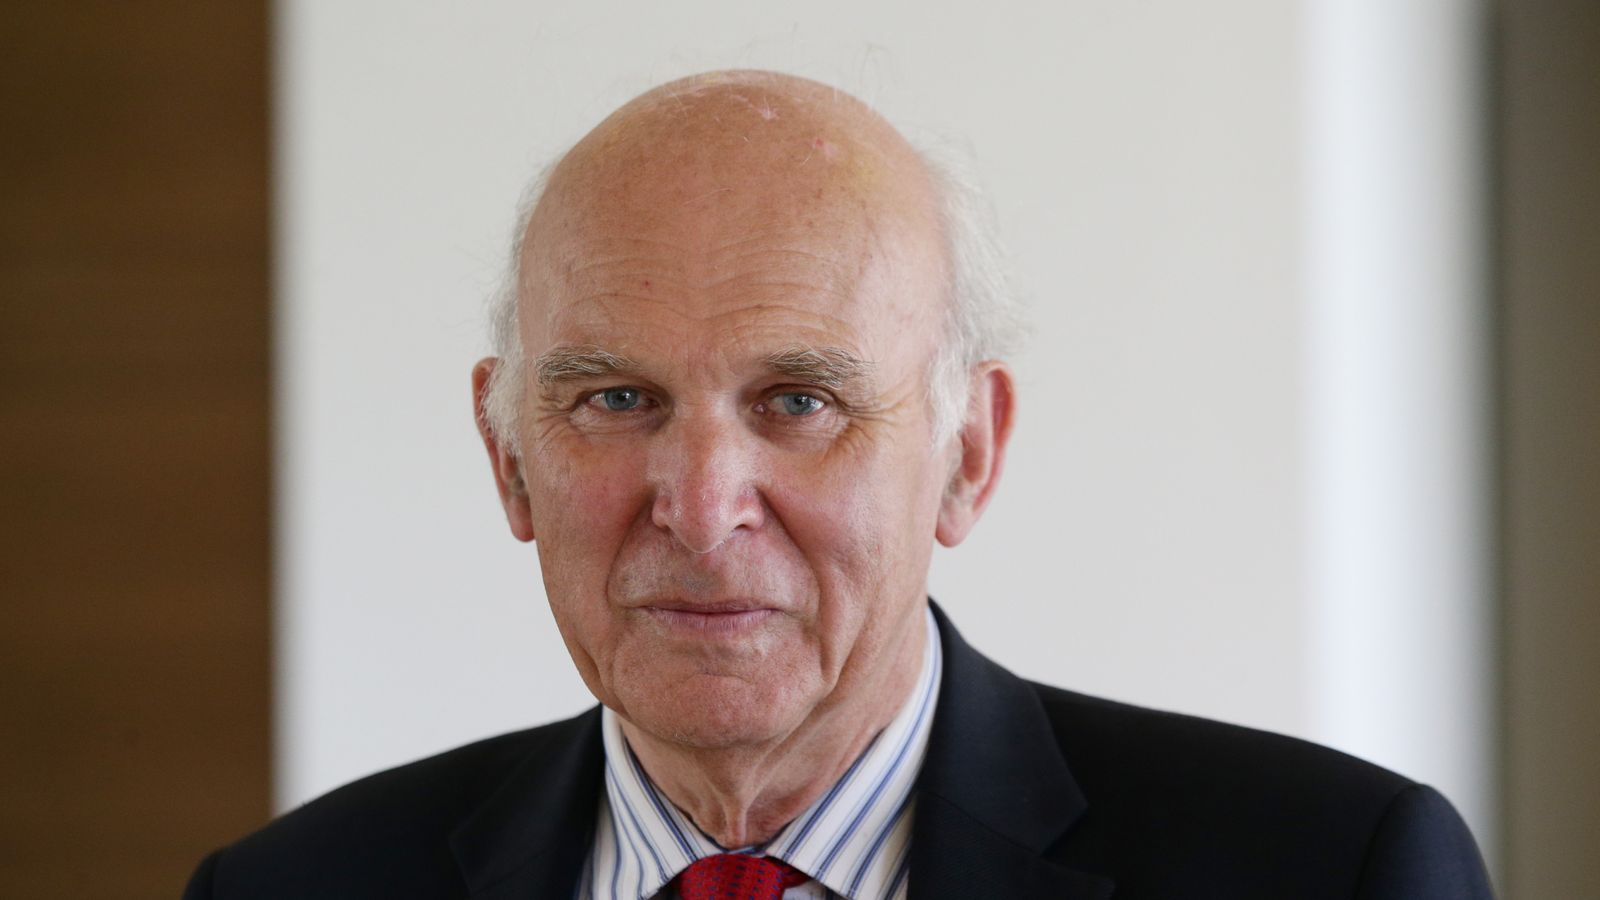 New leader Vince Cable: I will make Lib Dems credible